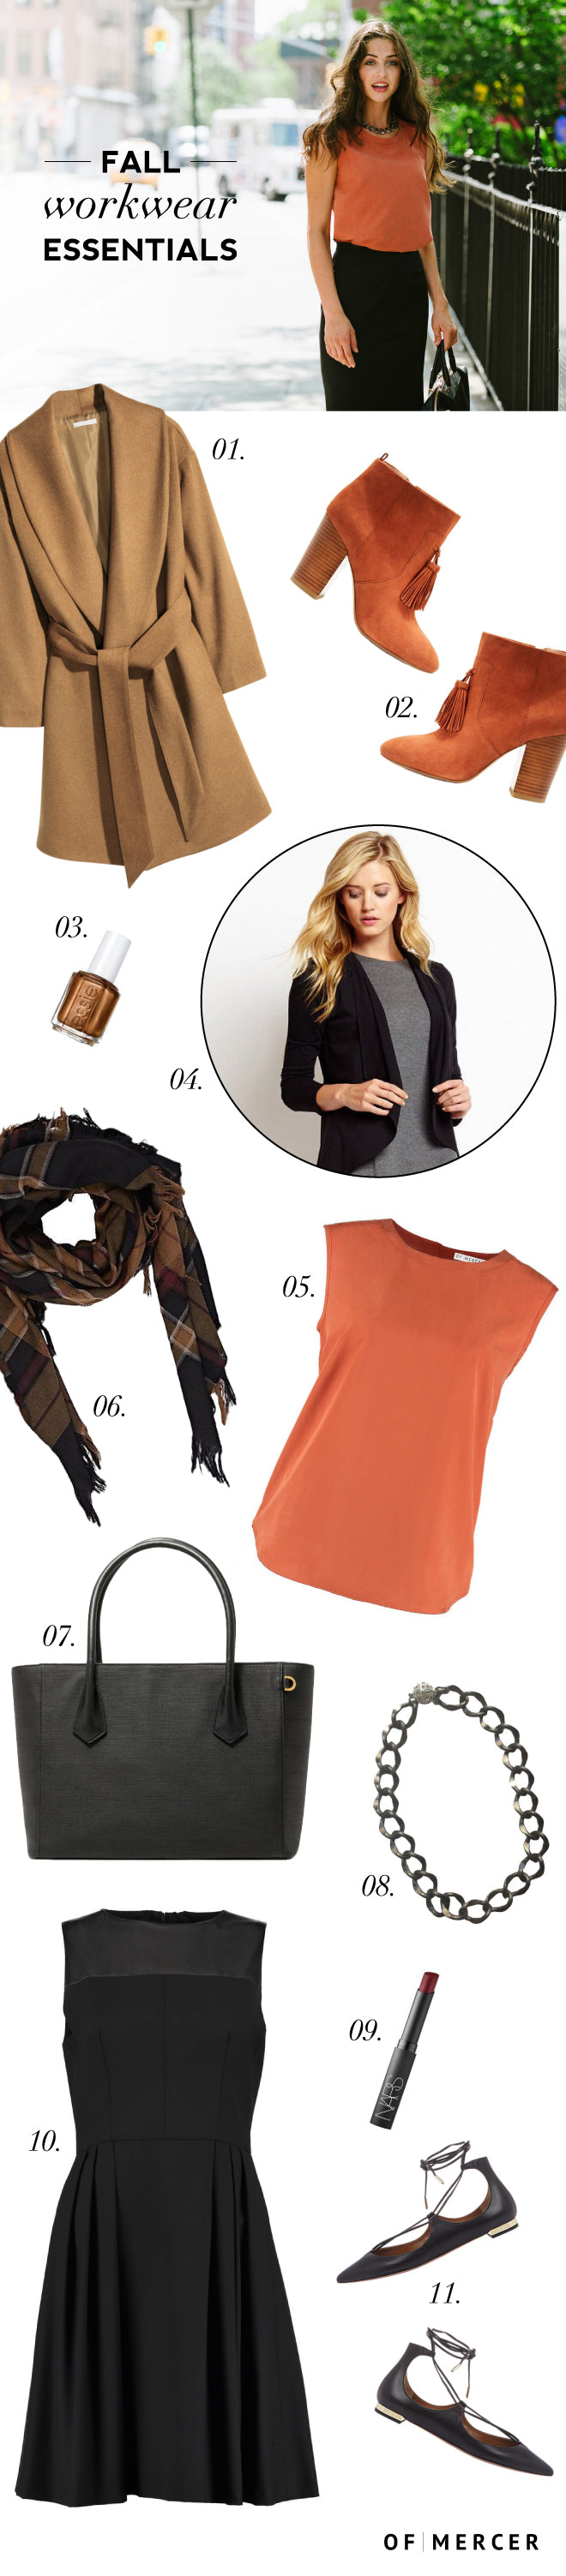 Fall Fashion Essentials - Of Mercer Blog - Main Image